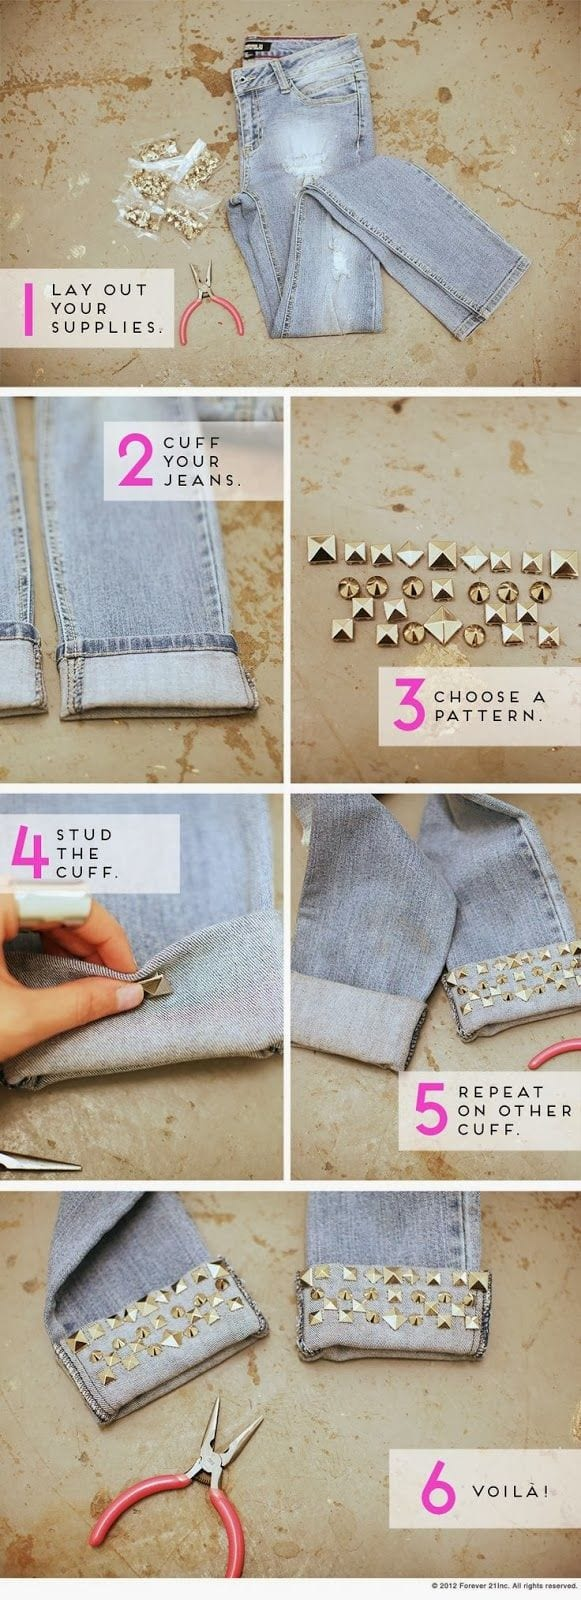 dd084da1290af22f1a0a487b3f7b56811 30 Easy DIY Summer Fashion Ideas With Step by Step Tutorials